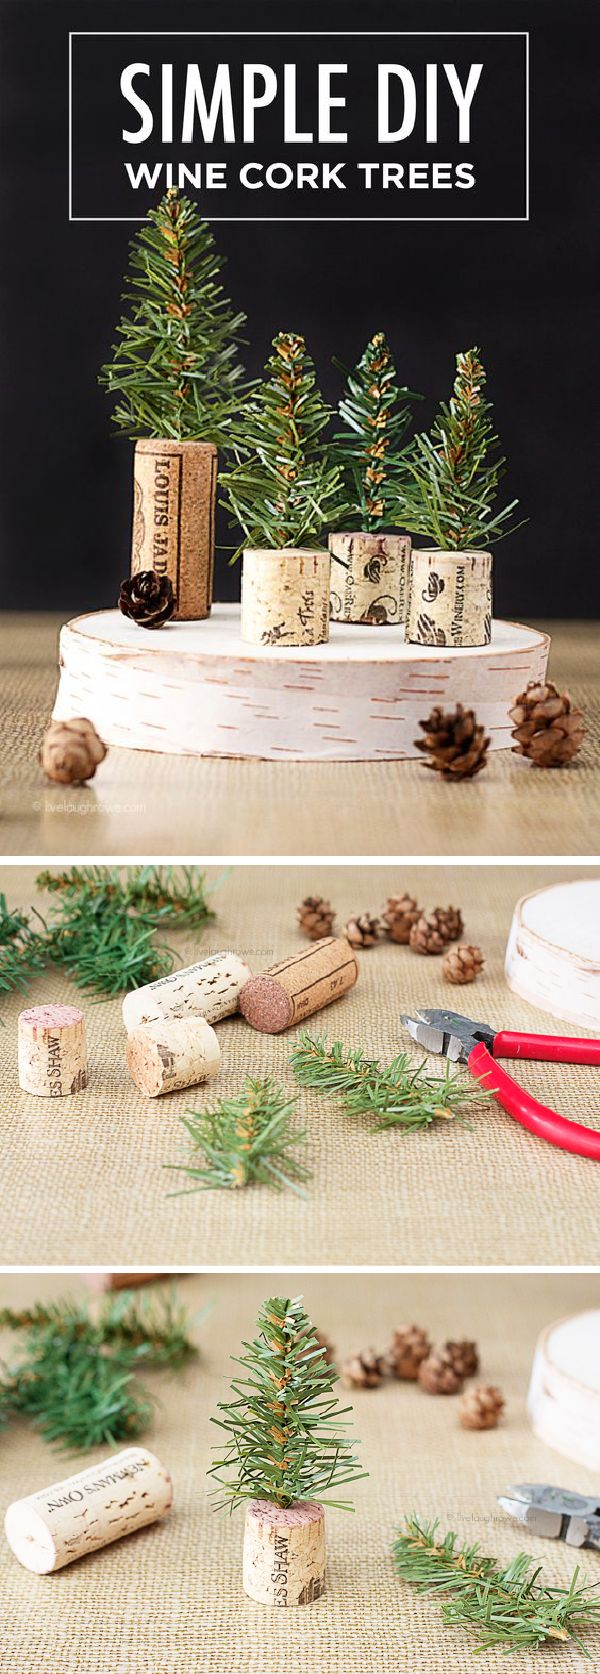 These adorable DIY wine cork trees are a fun and easy way to decorate your home this holiday season. Kelly from @LiveLaughRowe shows you how to make this simple craft in just a few minutes. Use these miniature trees as homemade place settings or to create a winter wonderland tabletop decoration.